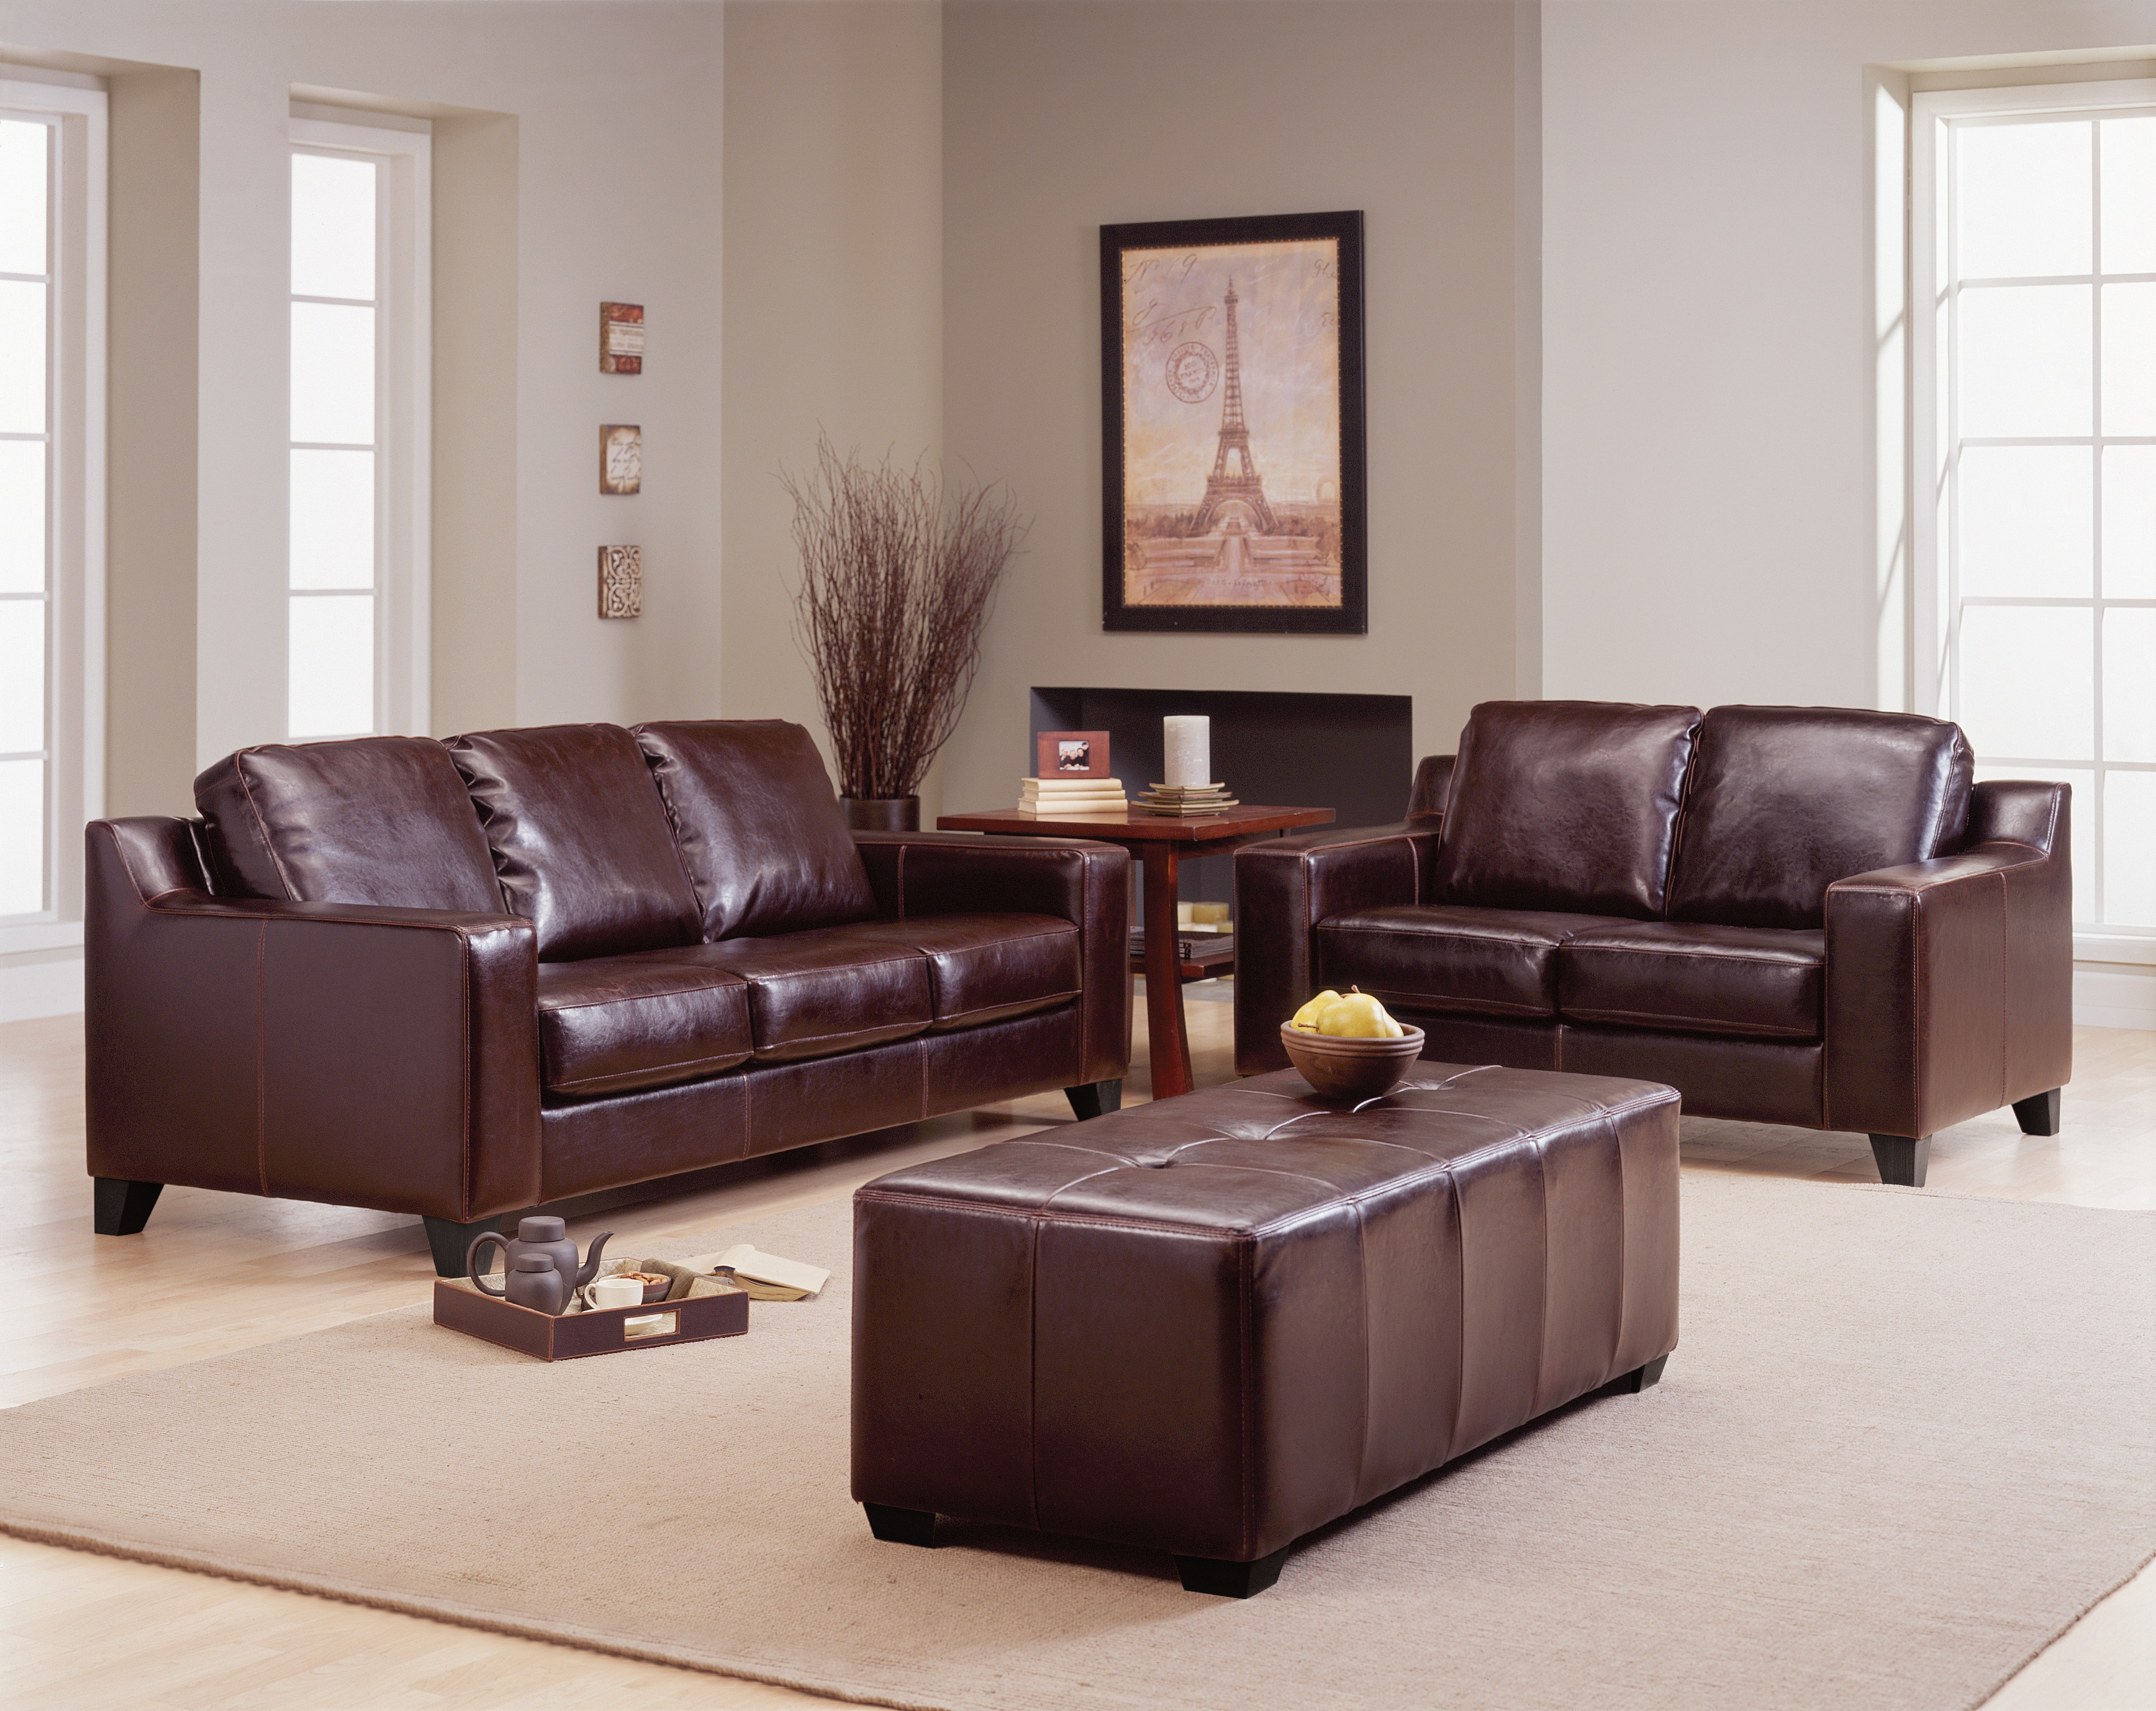 Reed 77289 70289 Sofa Collection